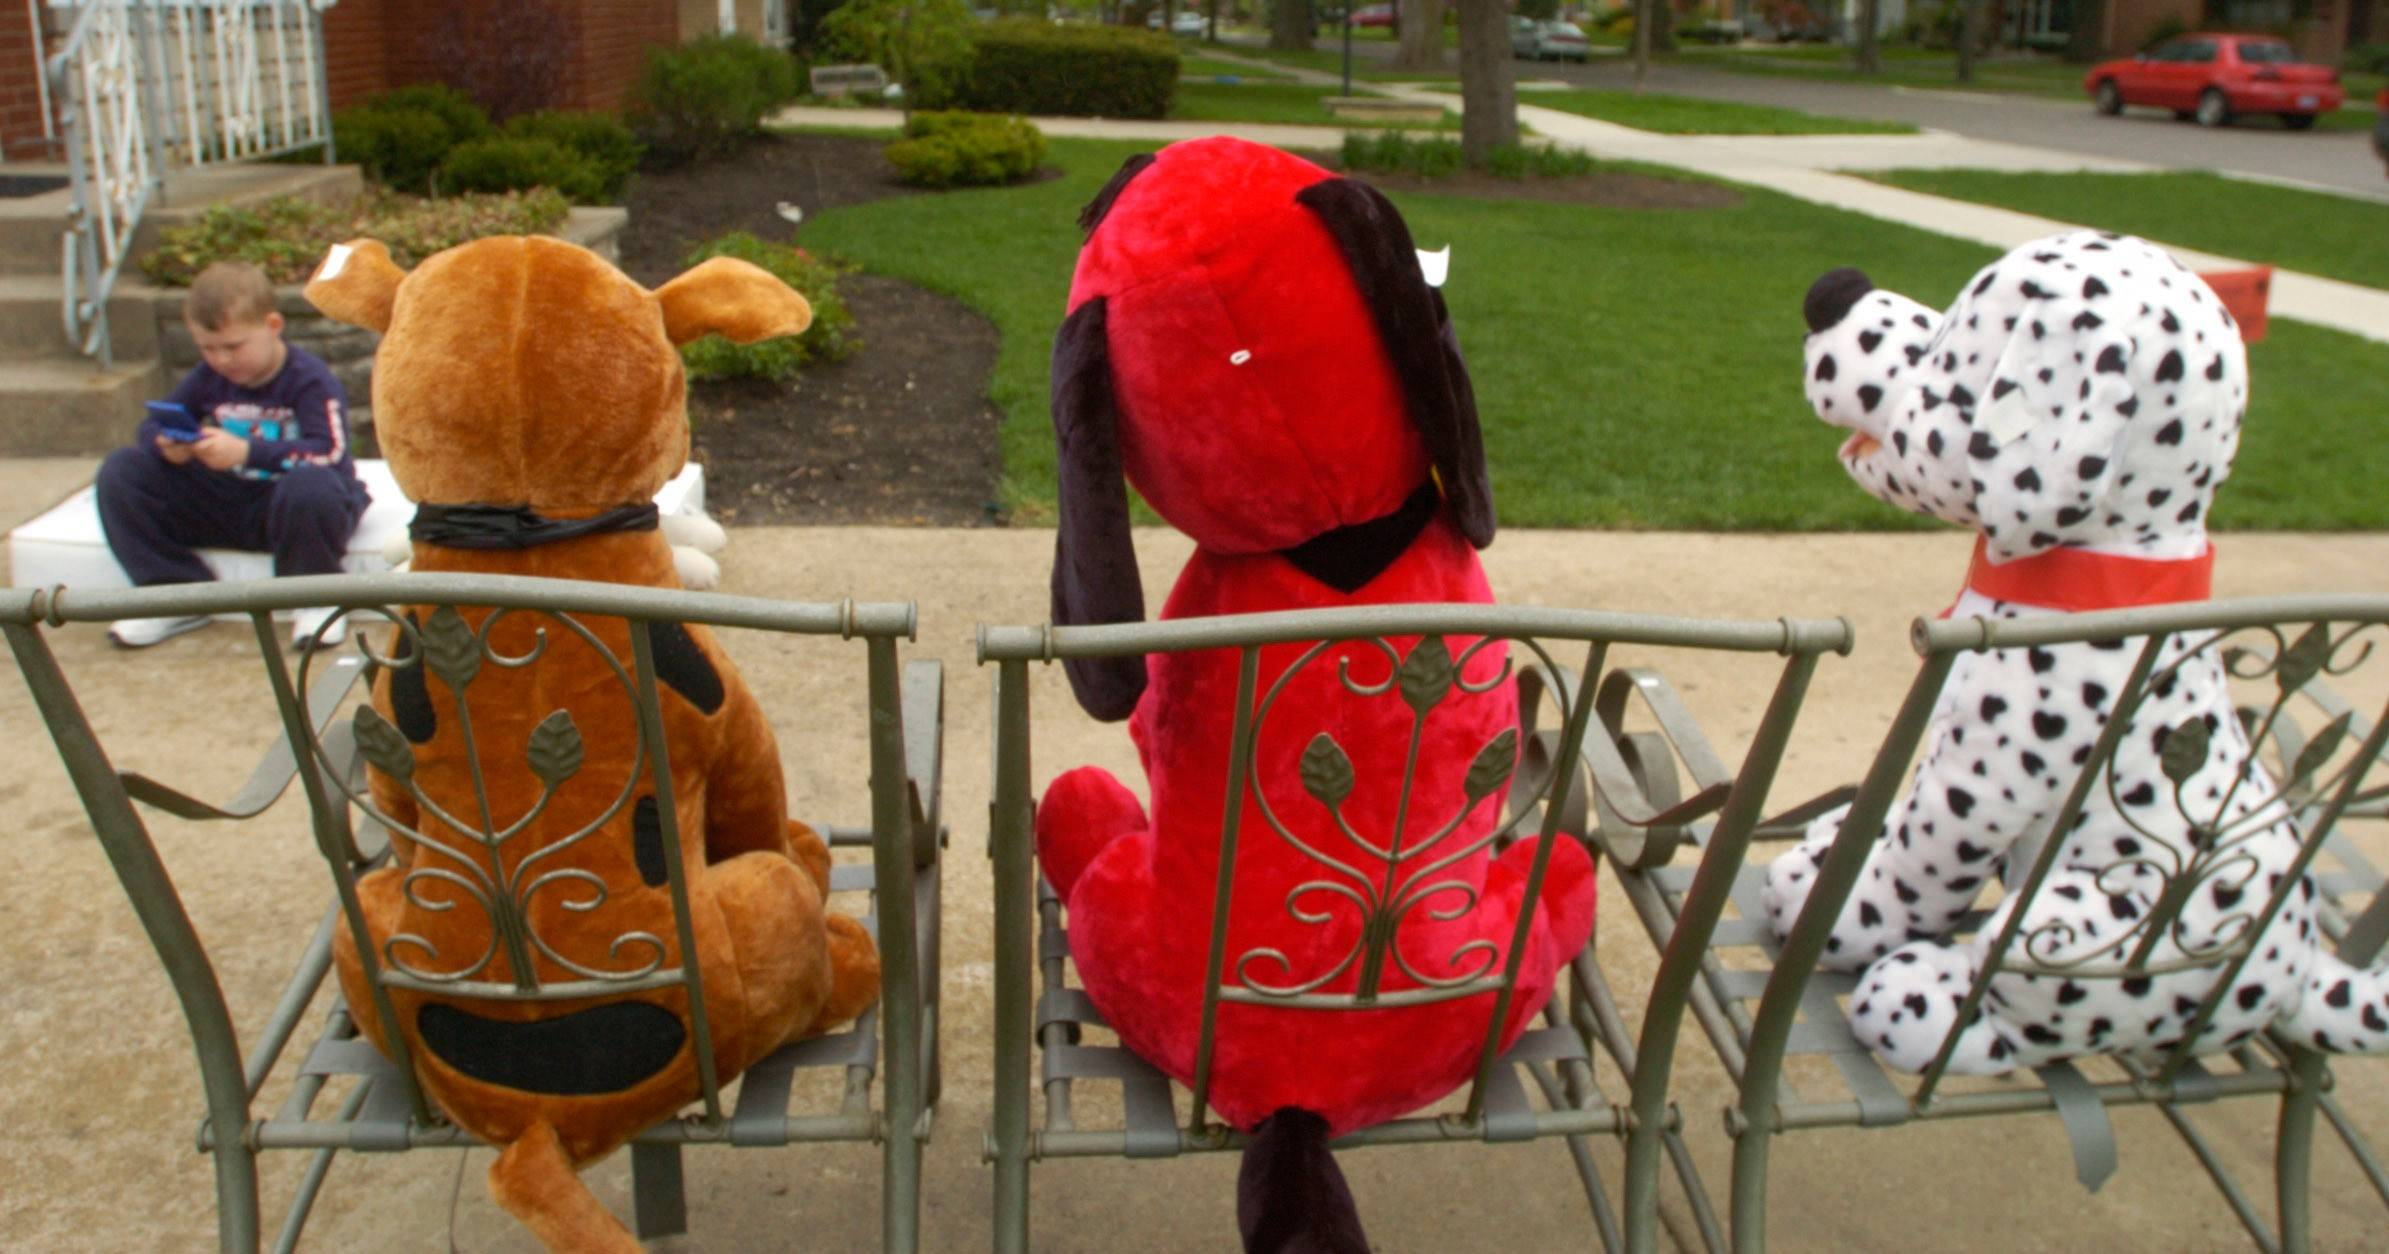 Stuffed animals are lined up on North Prospect Manor, ready to greet customers during a prior villagewide garage sale.